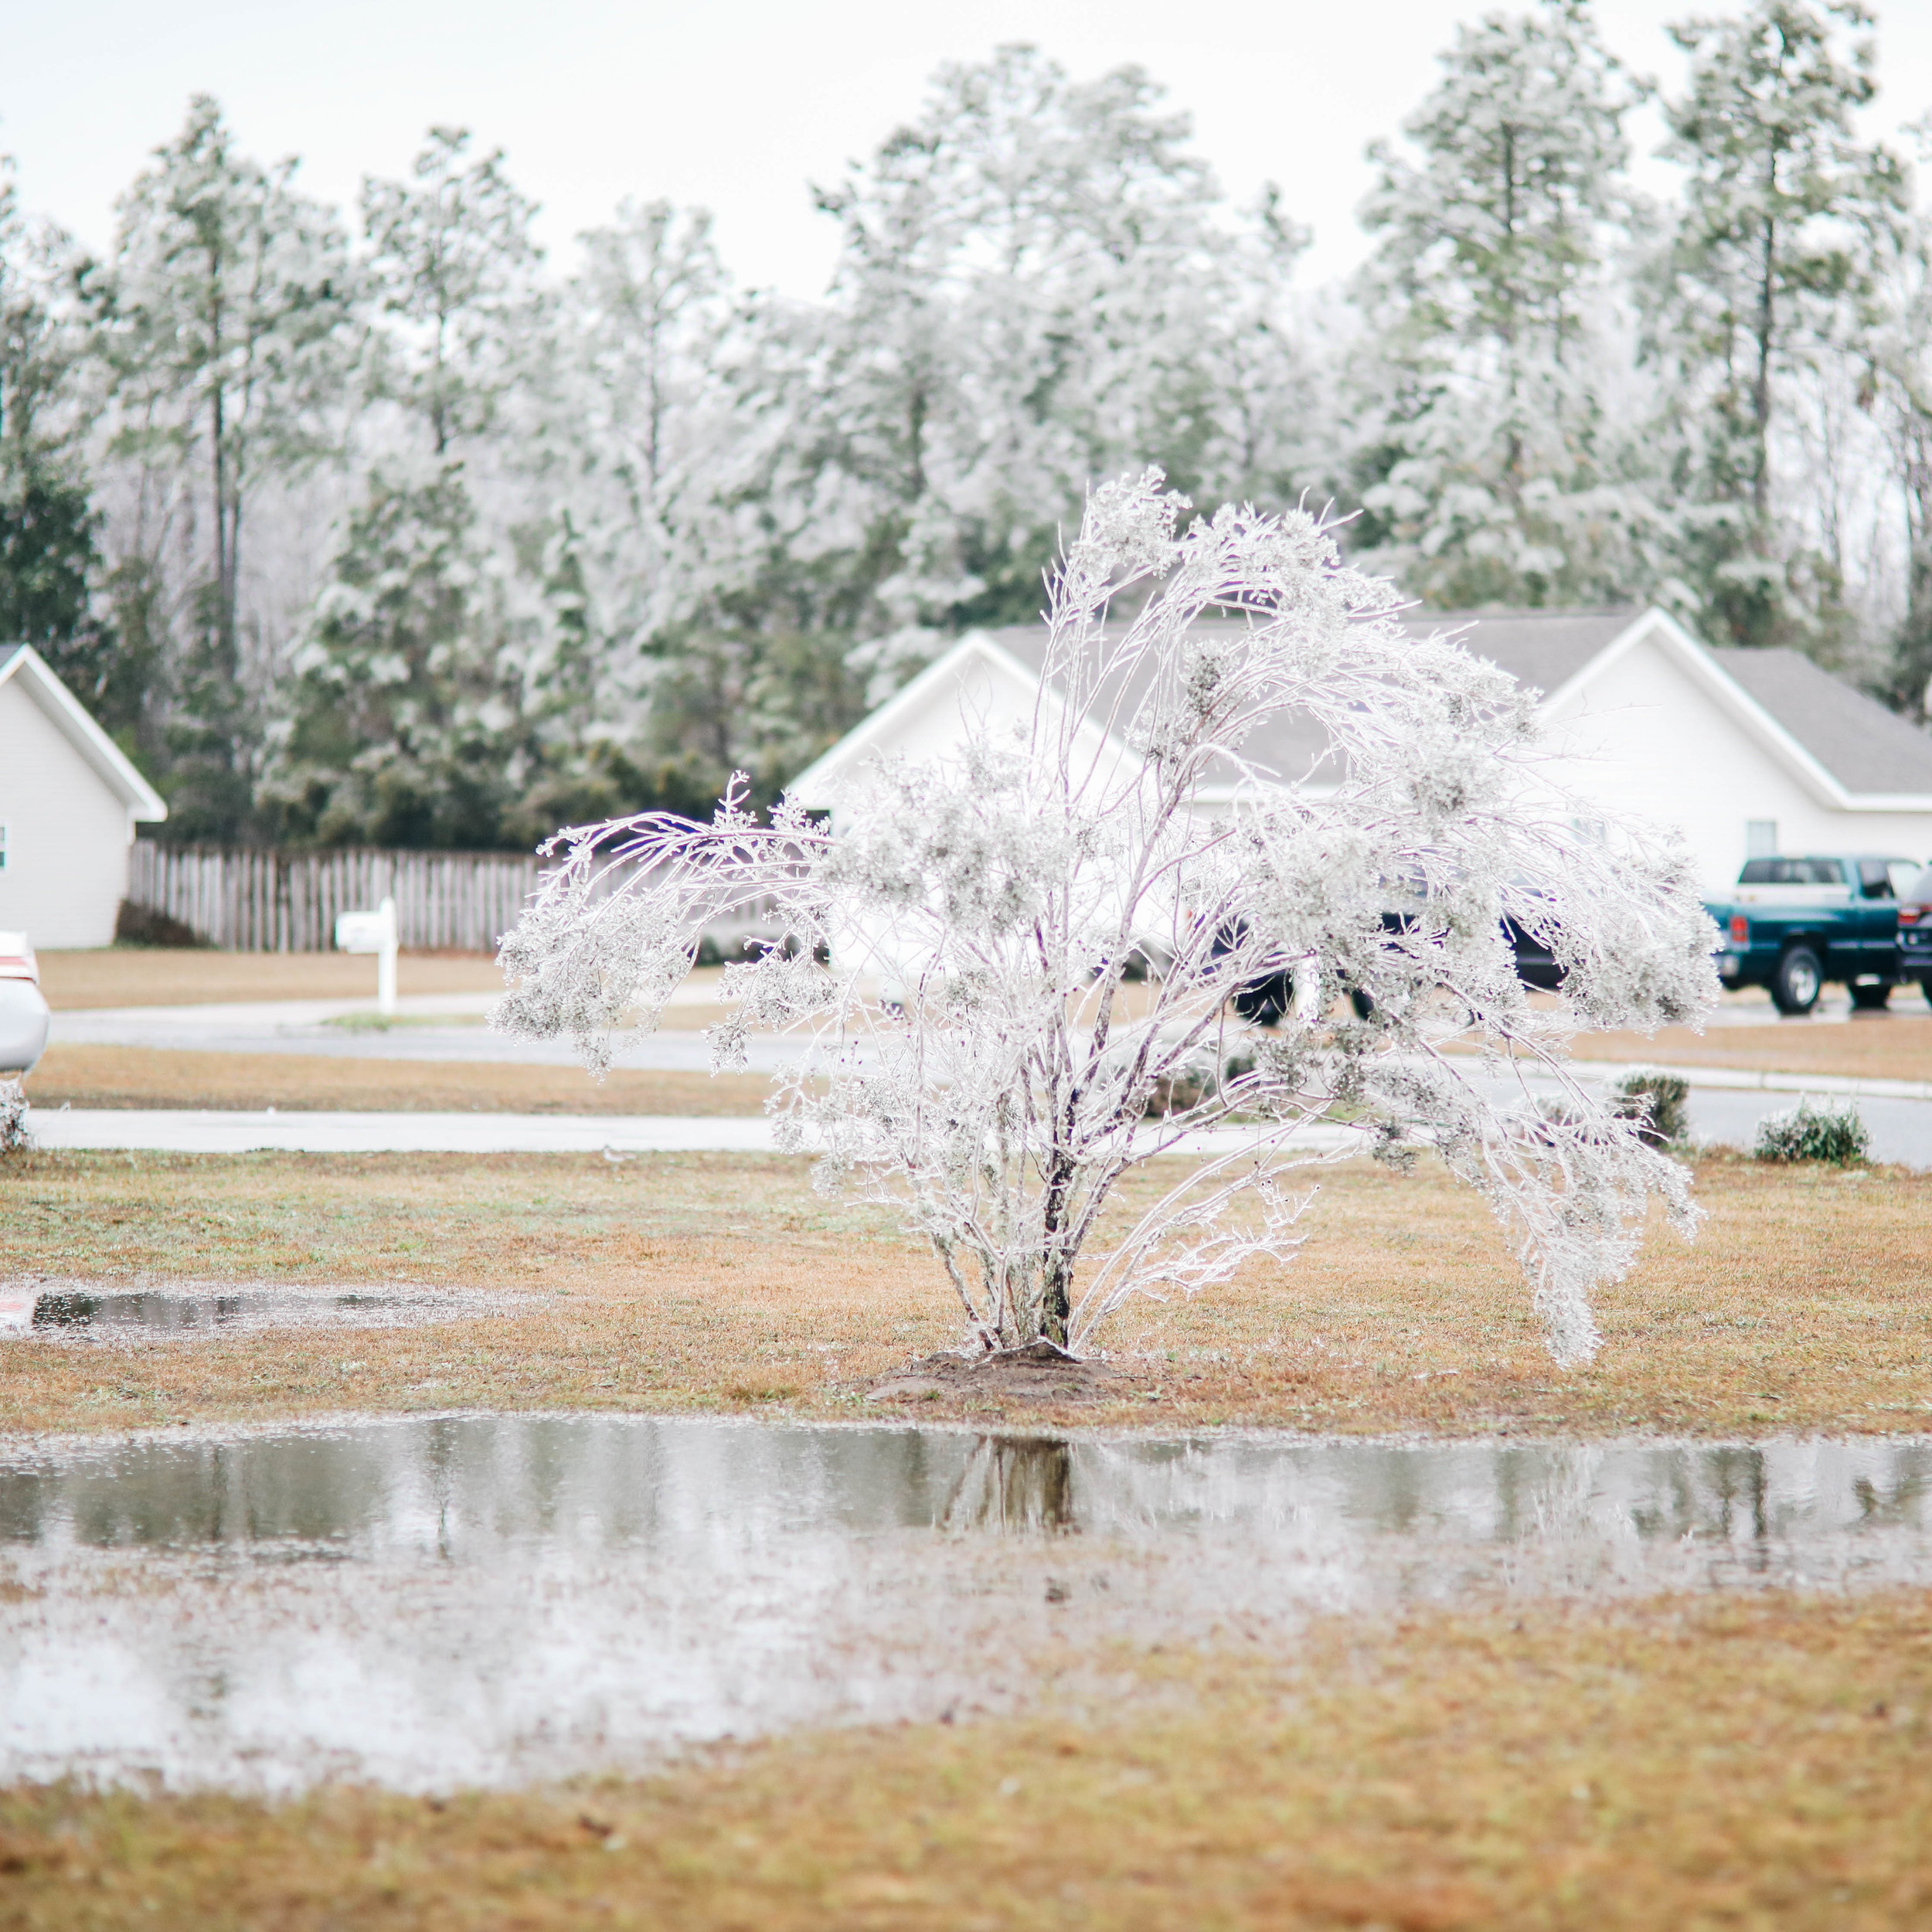 Limbs are weighed down in a resident's yard by heavy ice